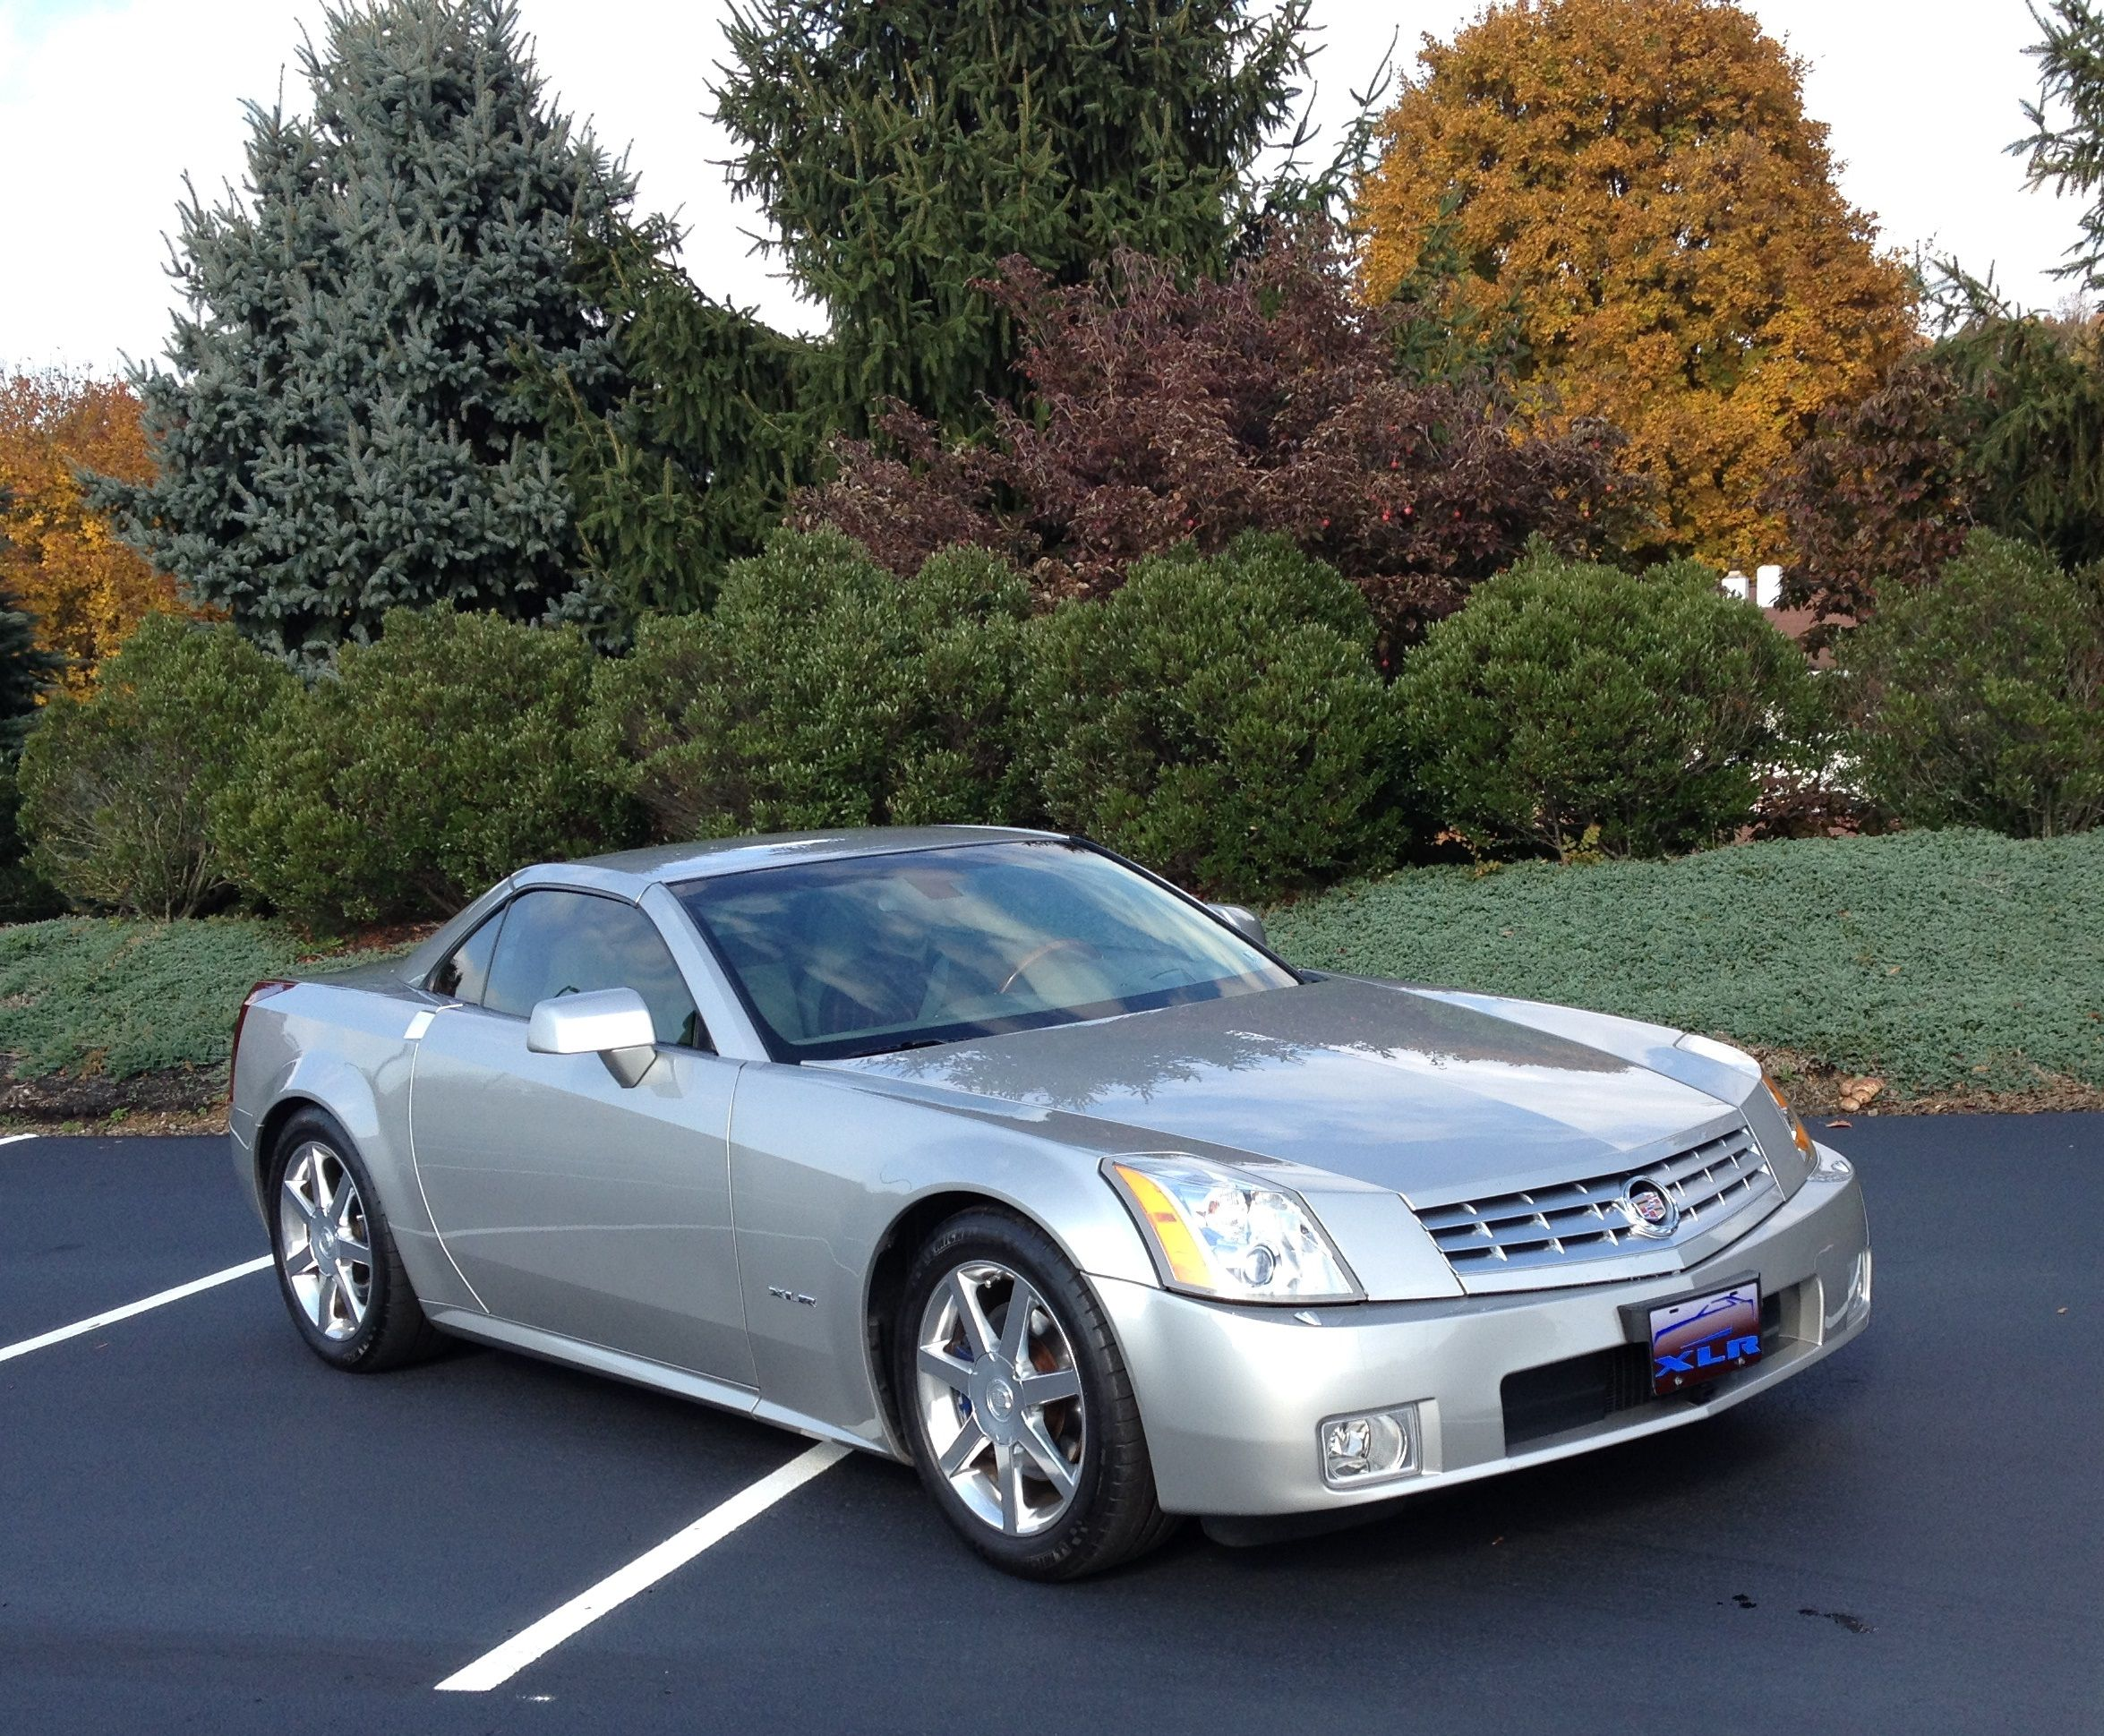 Cadillac xlr cadillac pinterest cadillac sports car pictures and car pictures